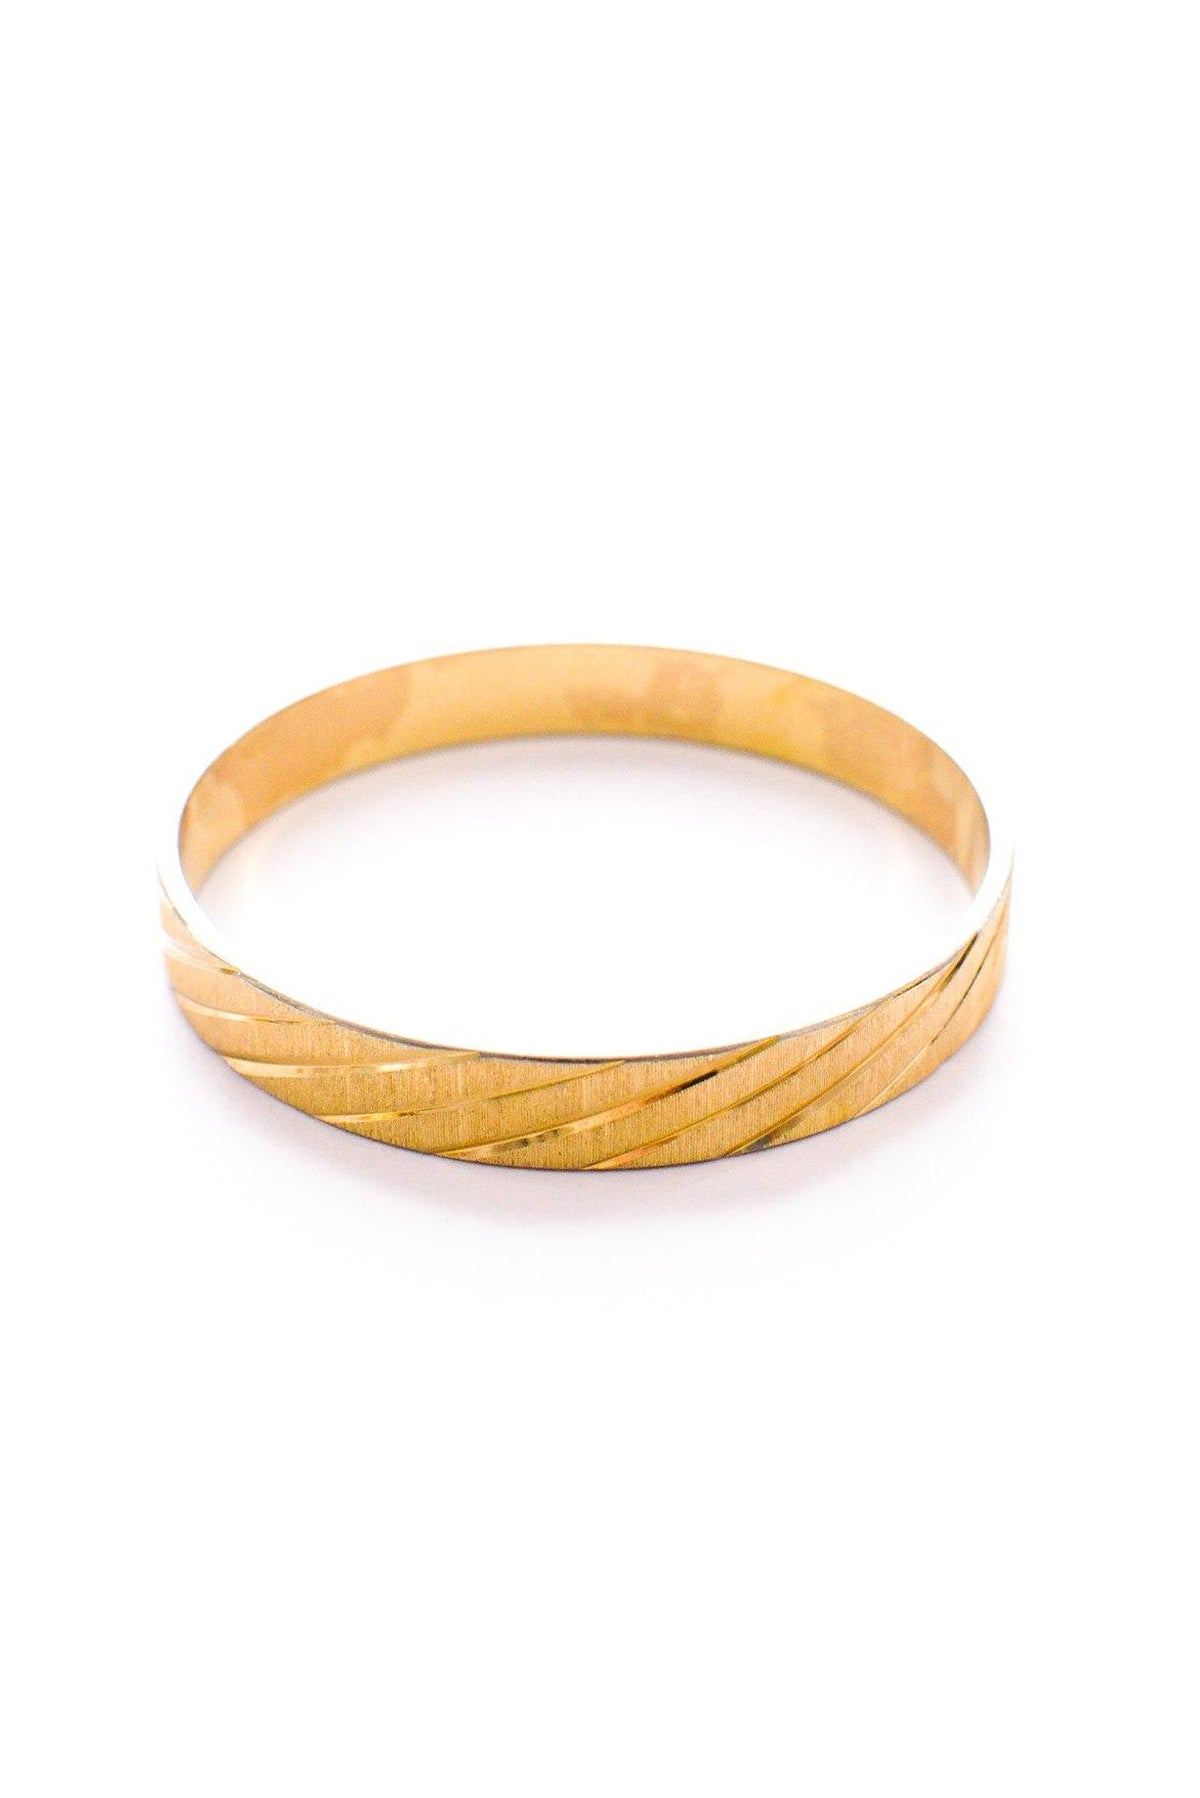 Vintage Monet etched gold bangle from Sweet & Spark.